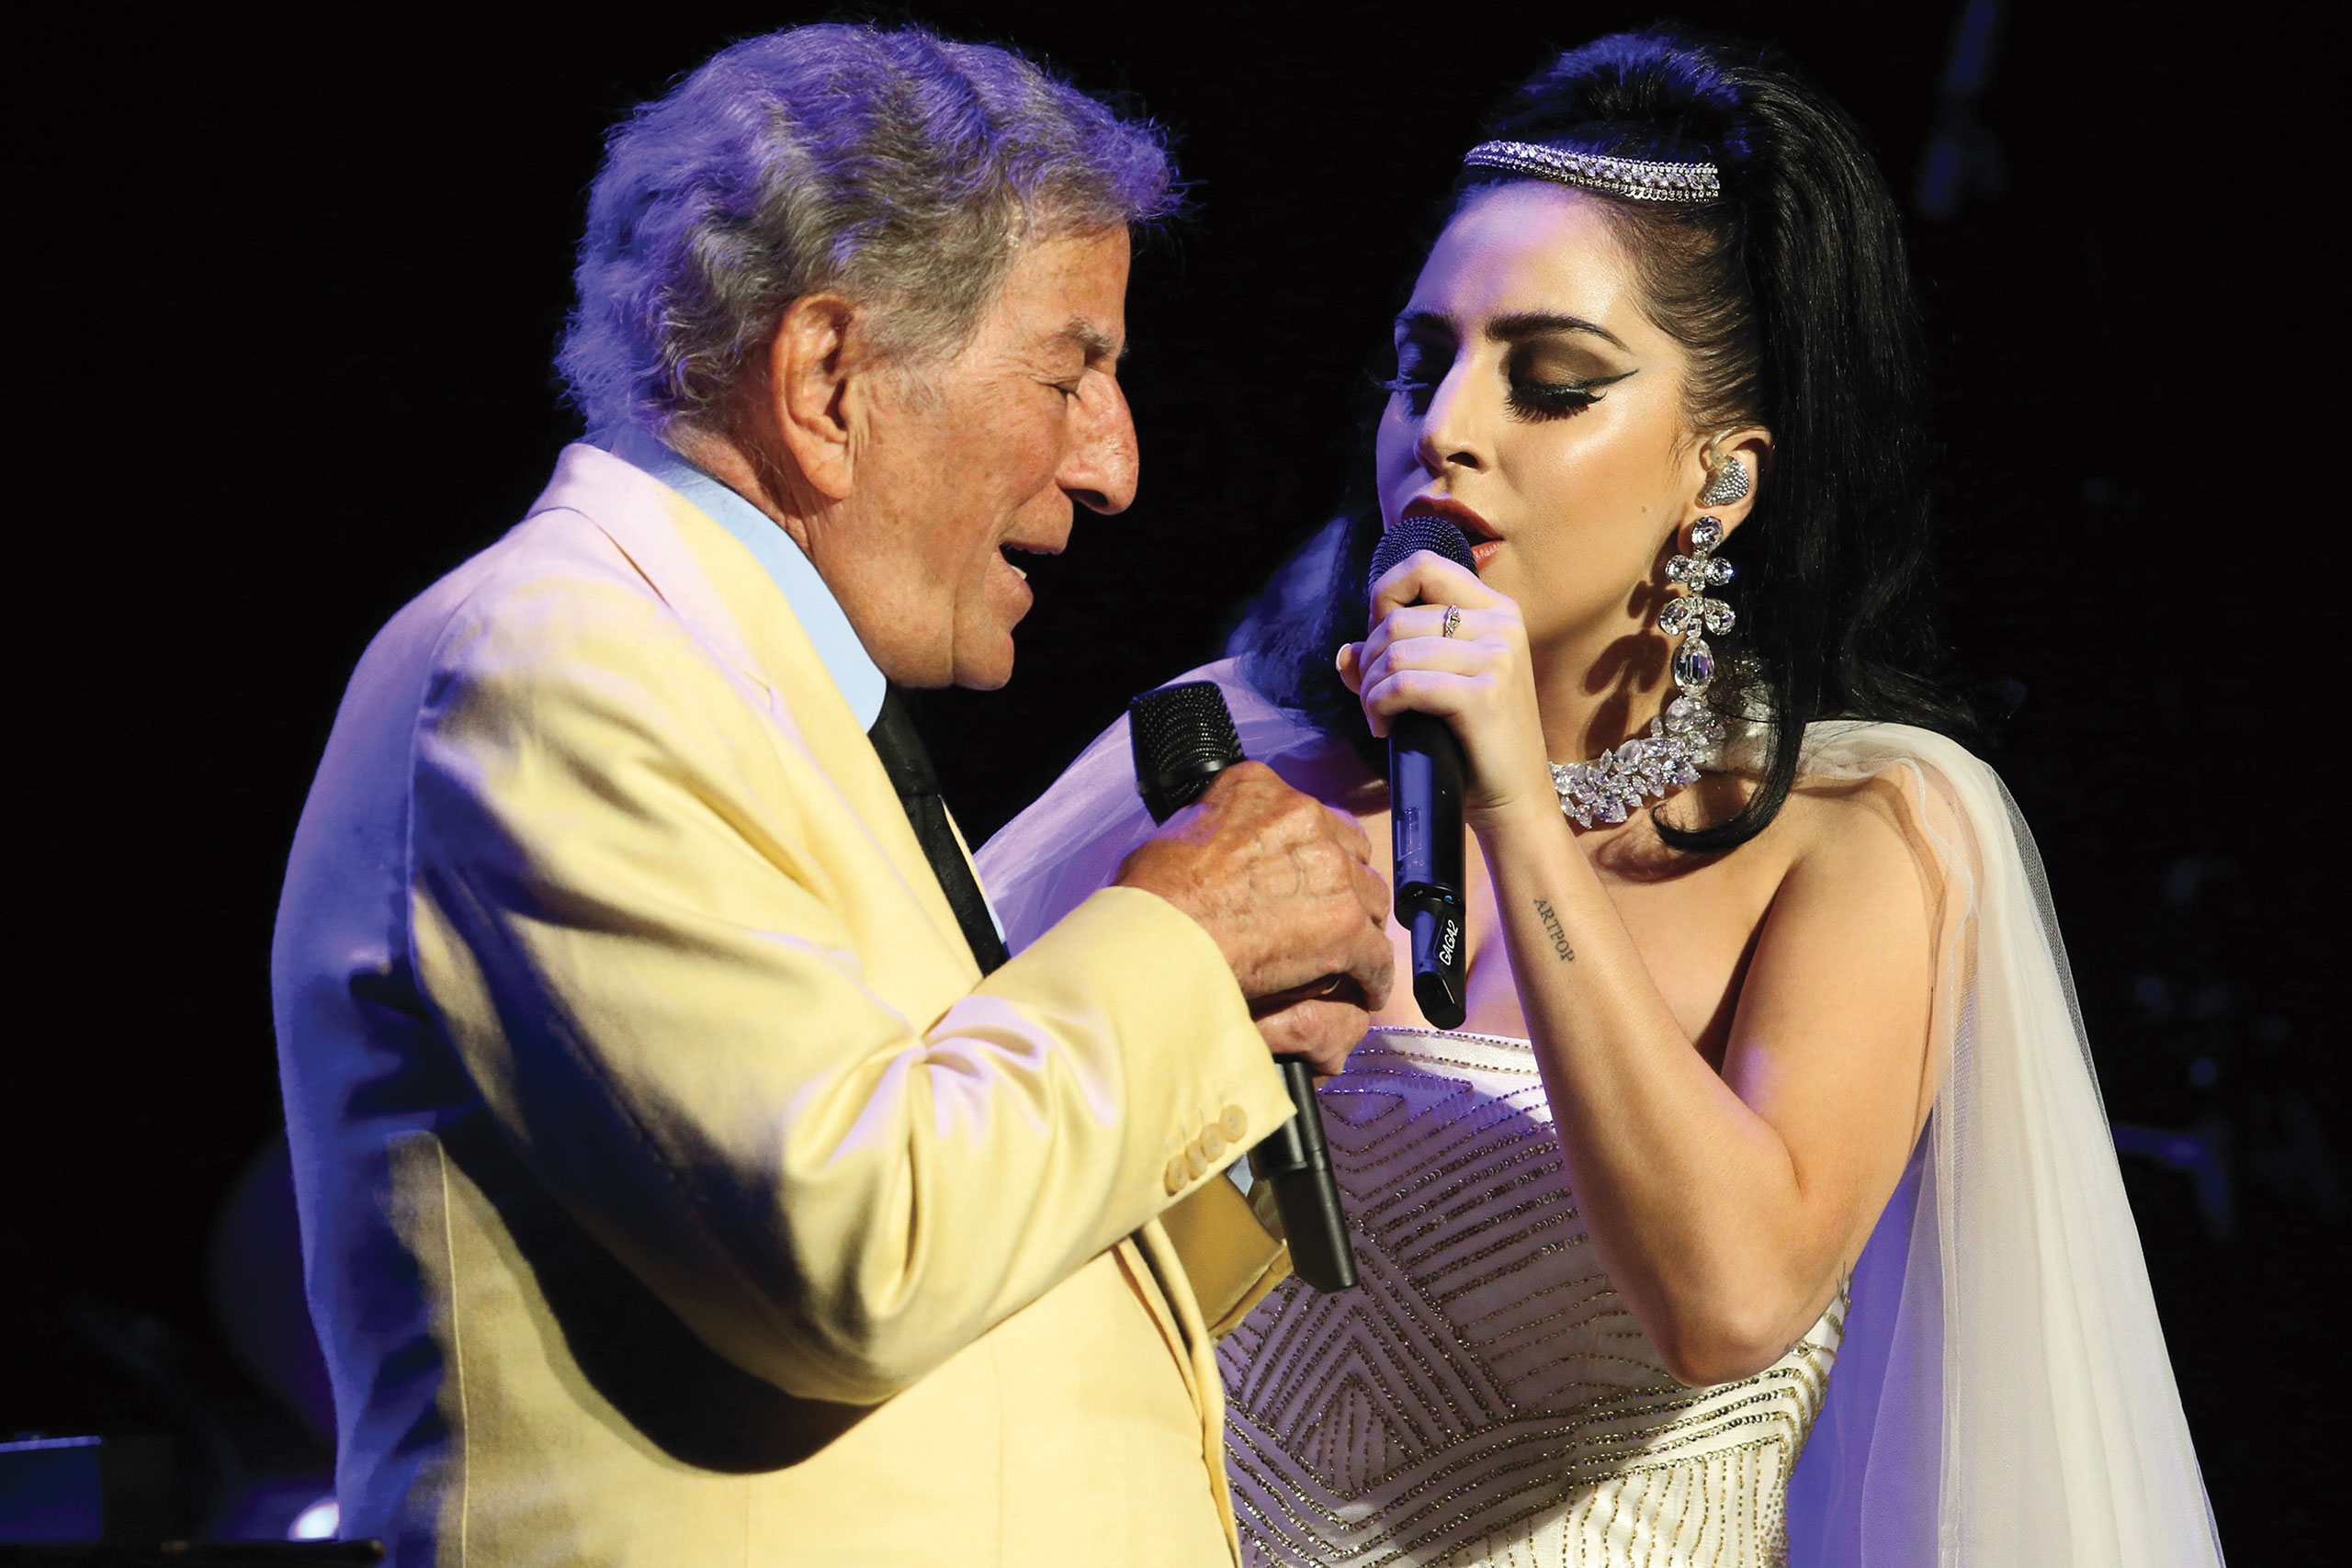 Tony Bennett and Lady Gaga at the Montreal Jazz Festival on July 1, 2014 in Montreal, Canada.